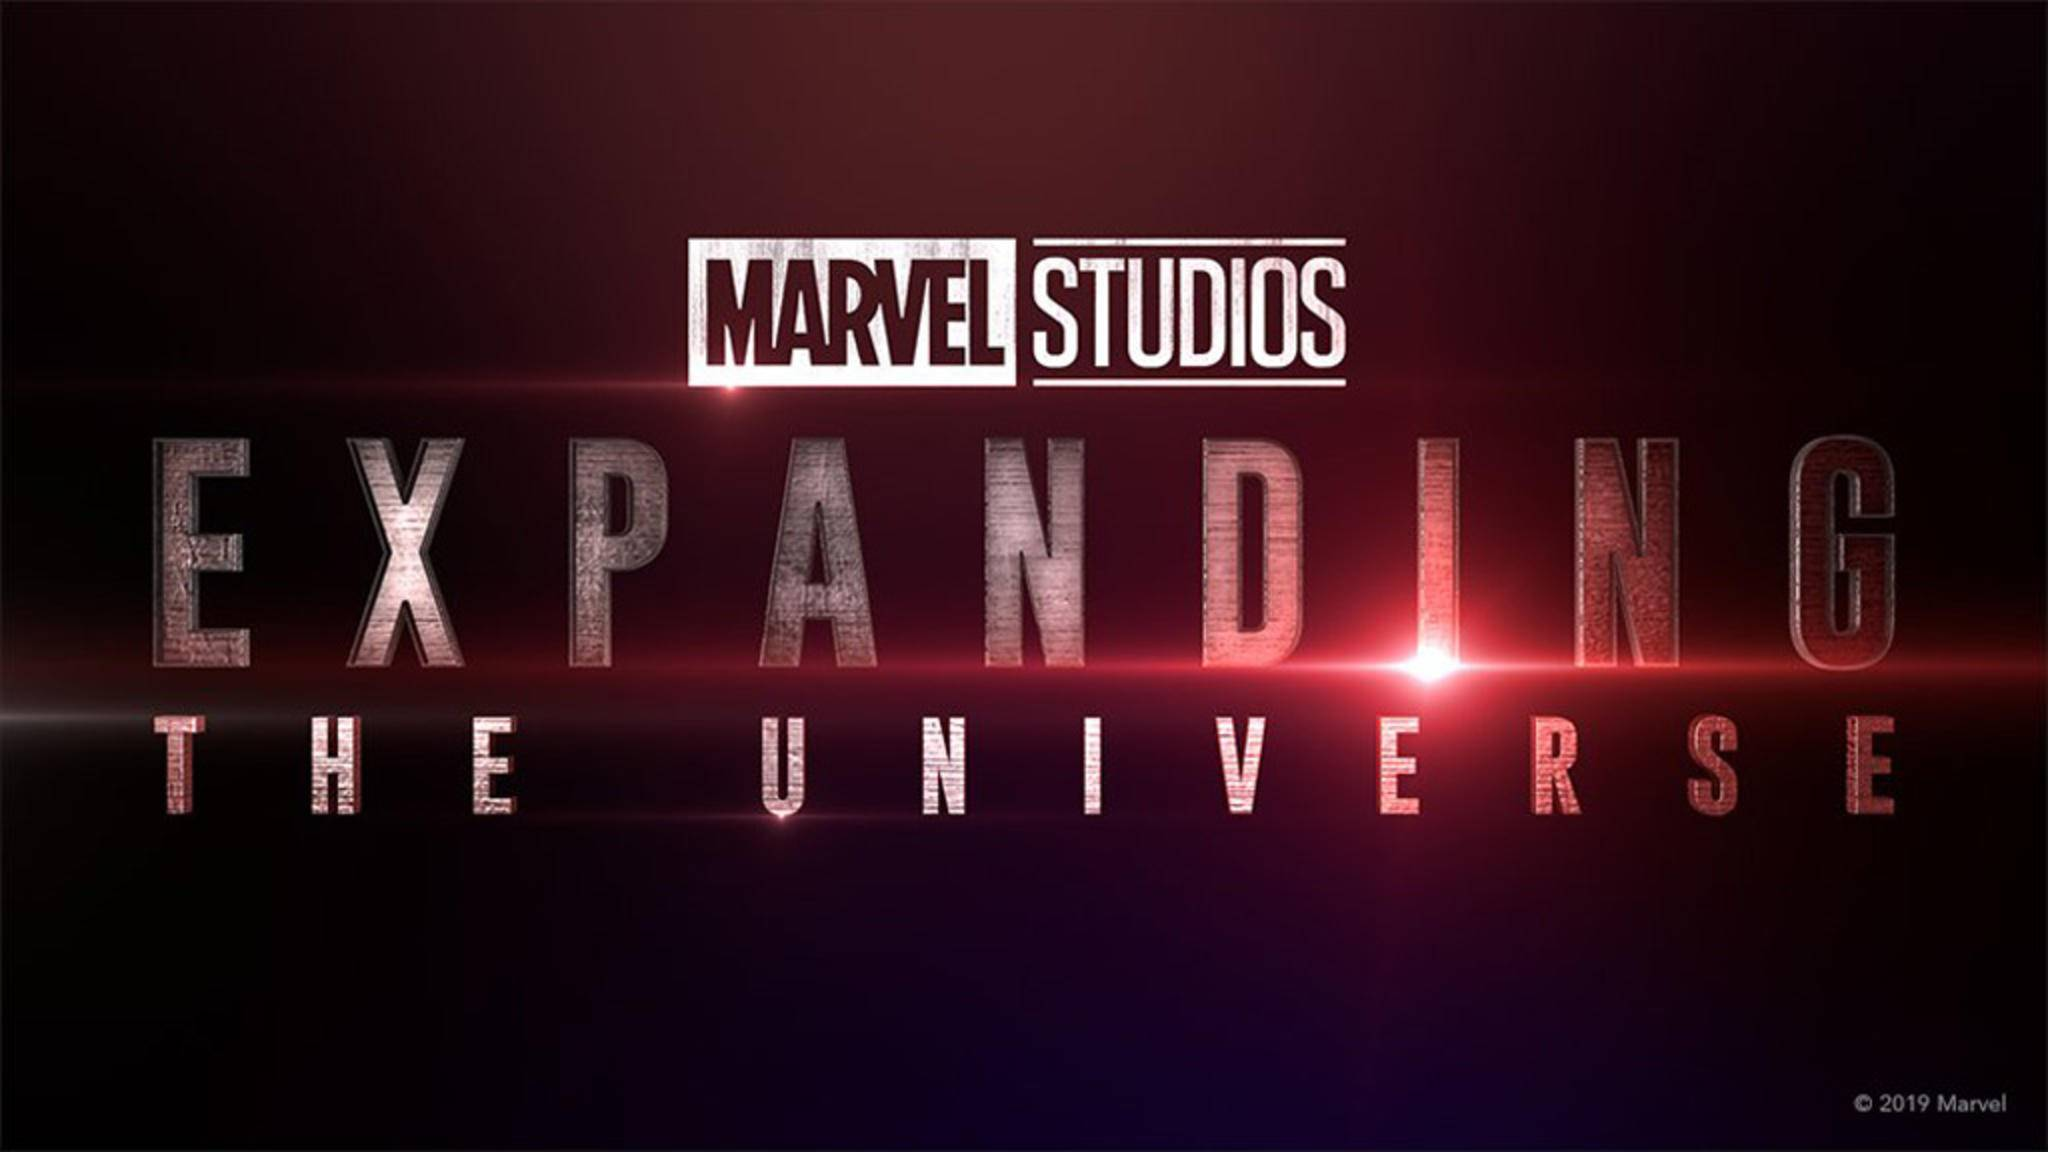 Marvel Studios Expanding the Universe